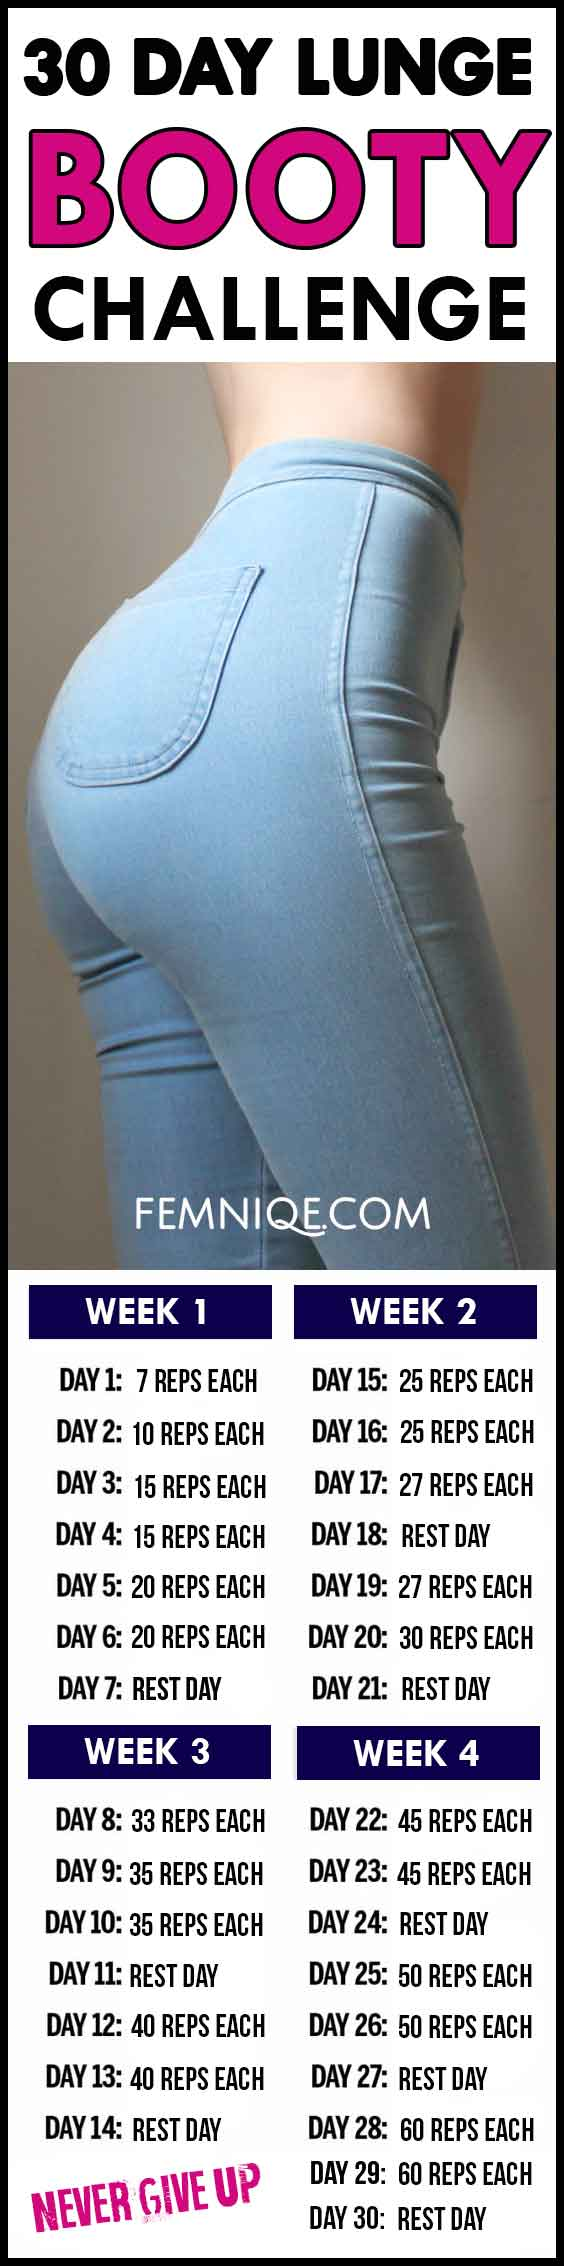 30 Day Lunge Challenge For Booty and Thighs - Femniqe